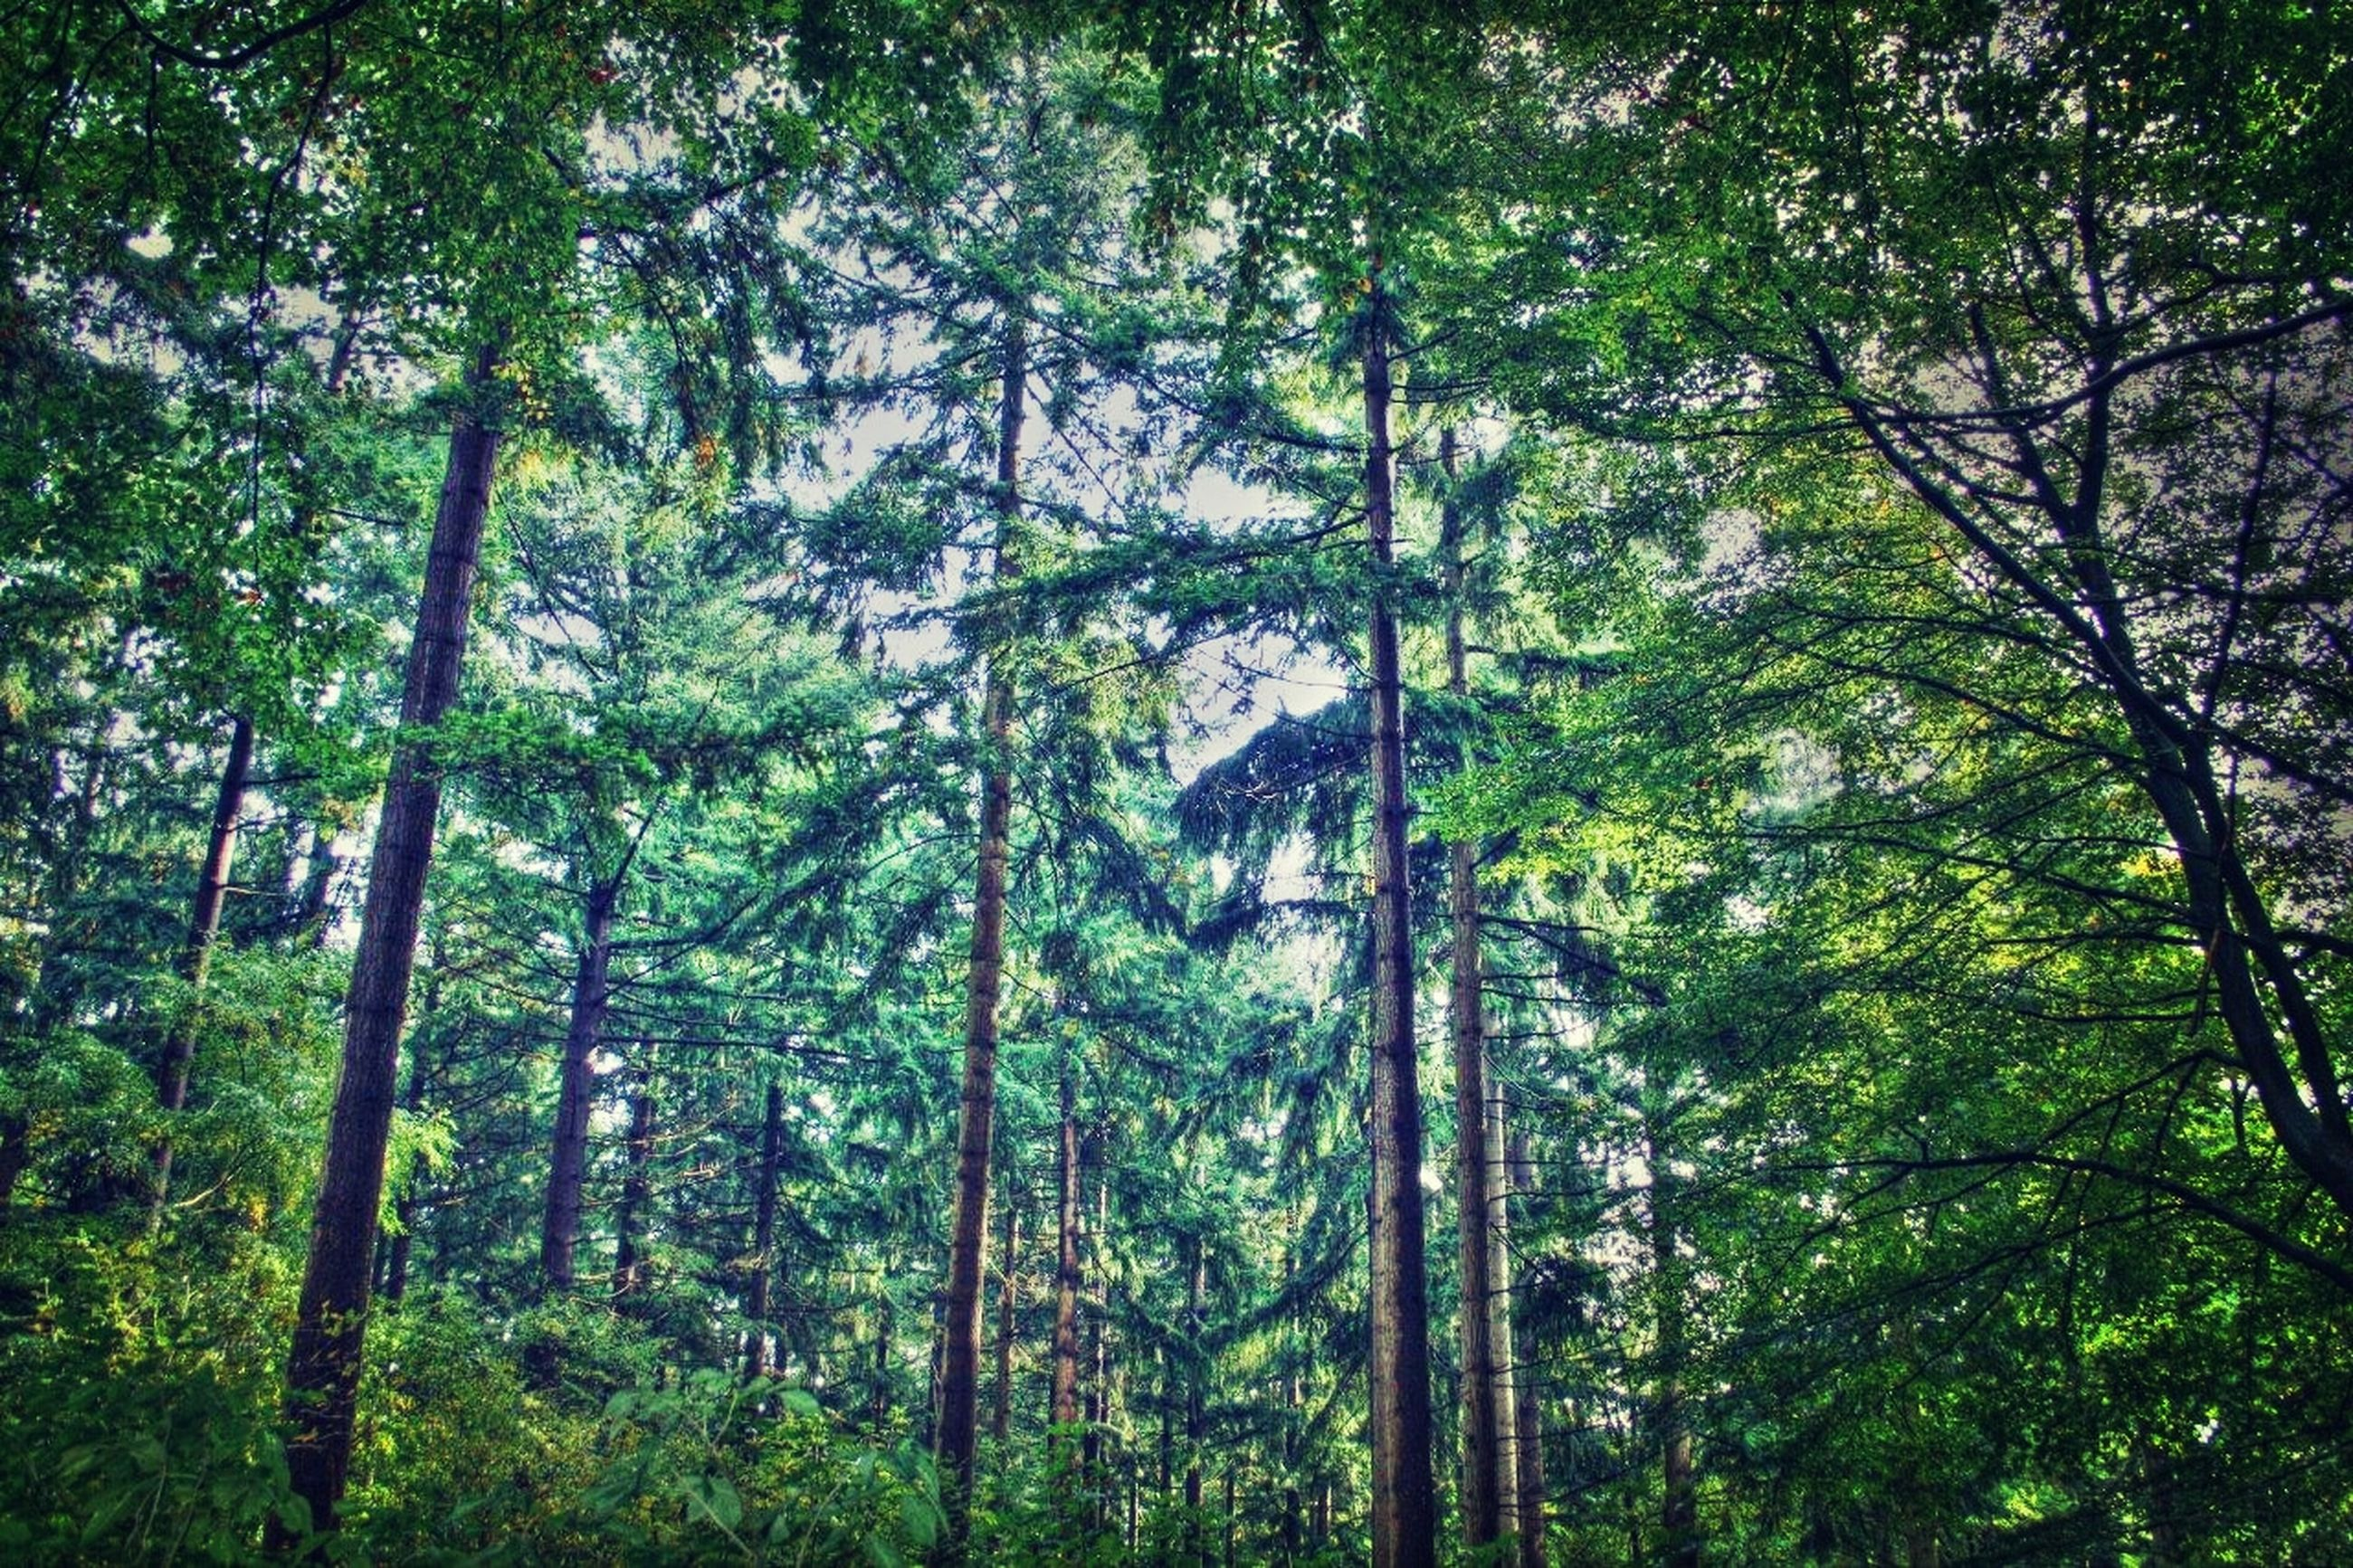 tree, forest, growth, tree trunk, tranquility, green color, woodland, nature, branch, low angle view, beauty in nature, lush foliage, tranquil scene, scenics, non-urban scene, day, outdoors, green, no people, idyllic